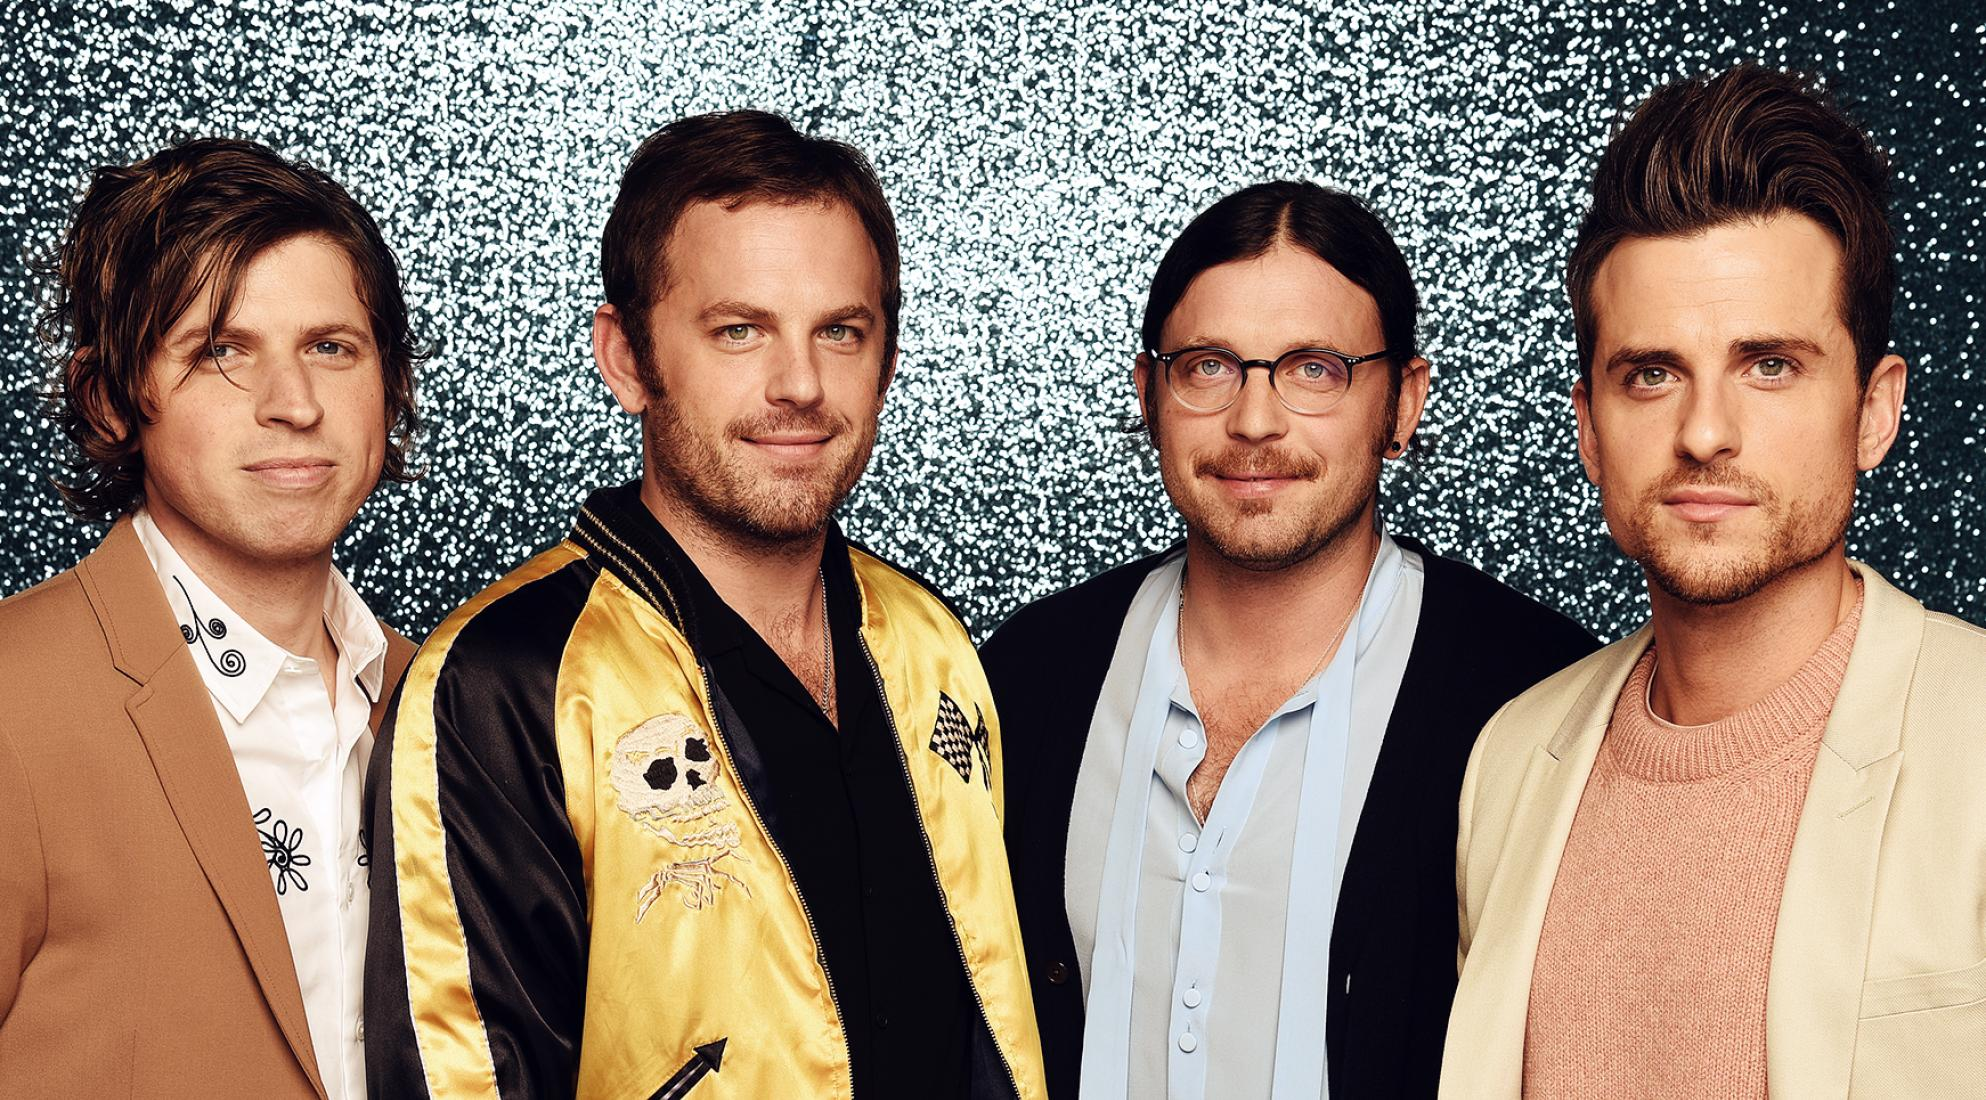 Kings of Leon to play free concert in Calgary on July 14th!